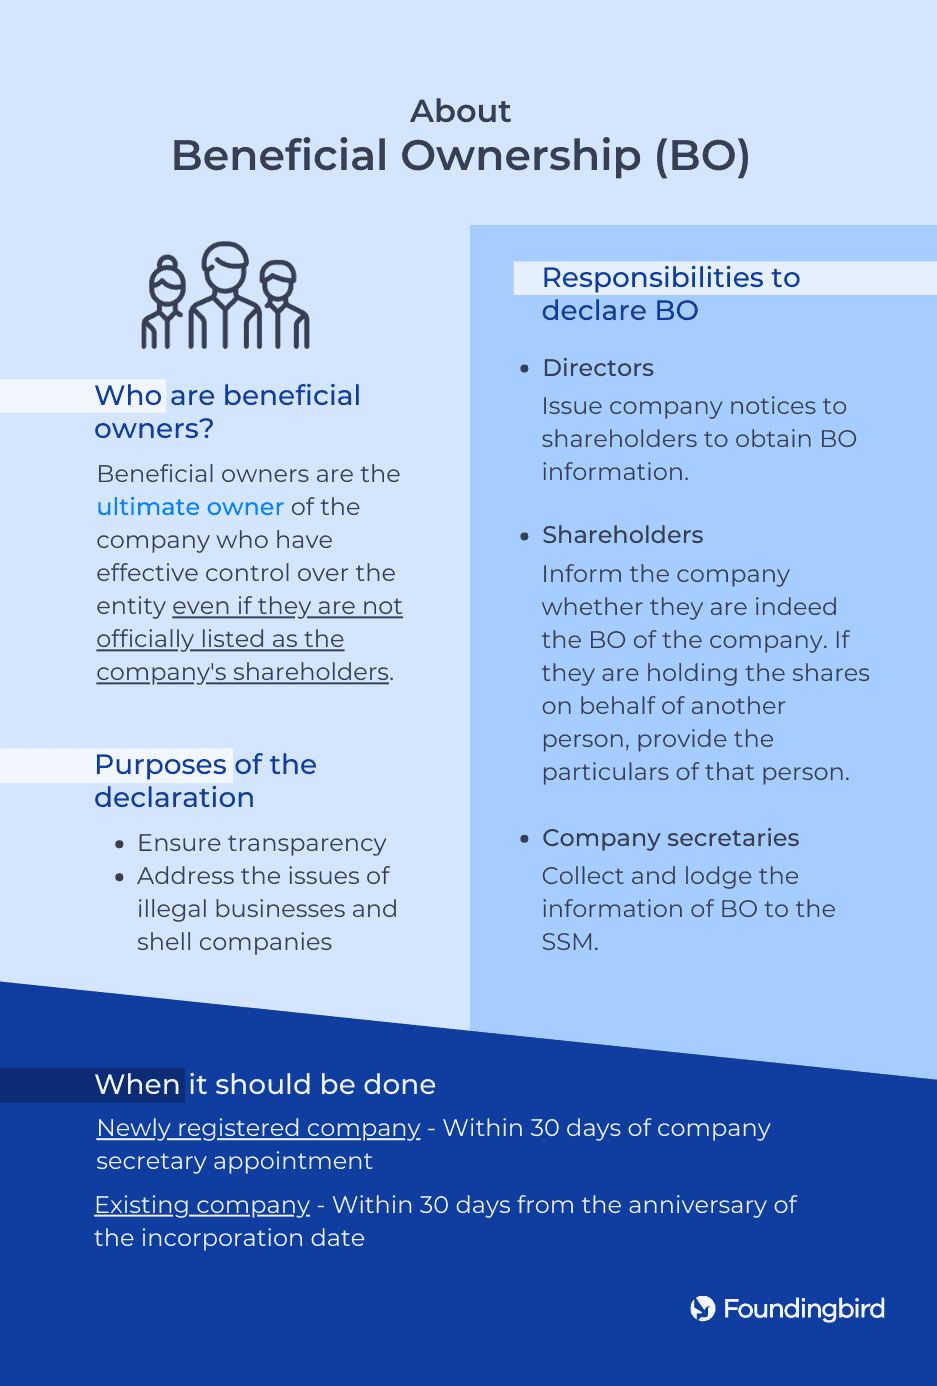 About beneficial ownership (BO) - Infographic